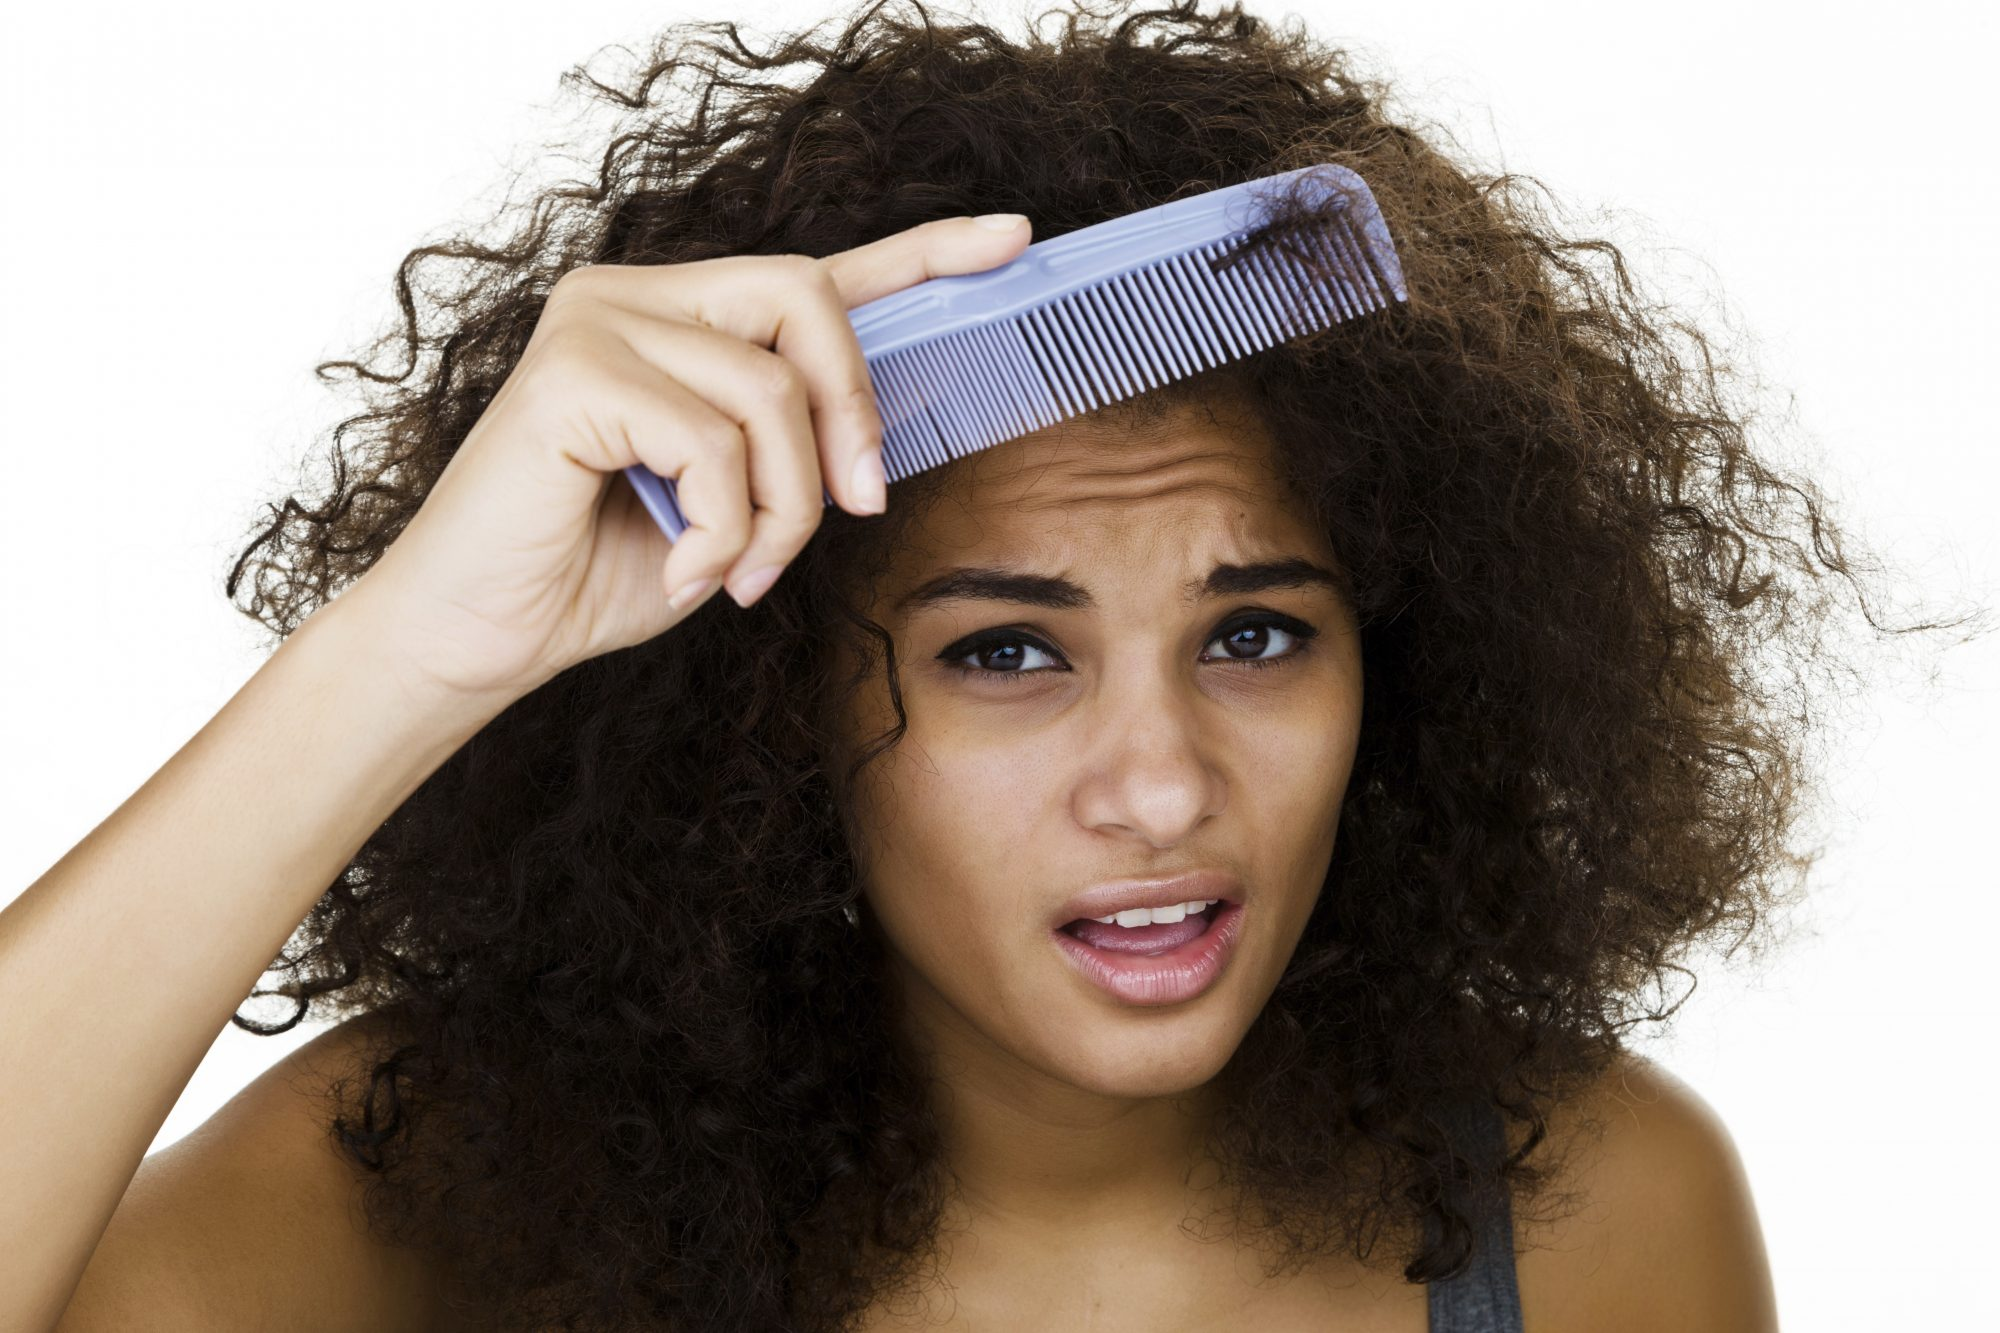 pictures 9 Solutions for Common Hair Emergencies